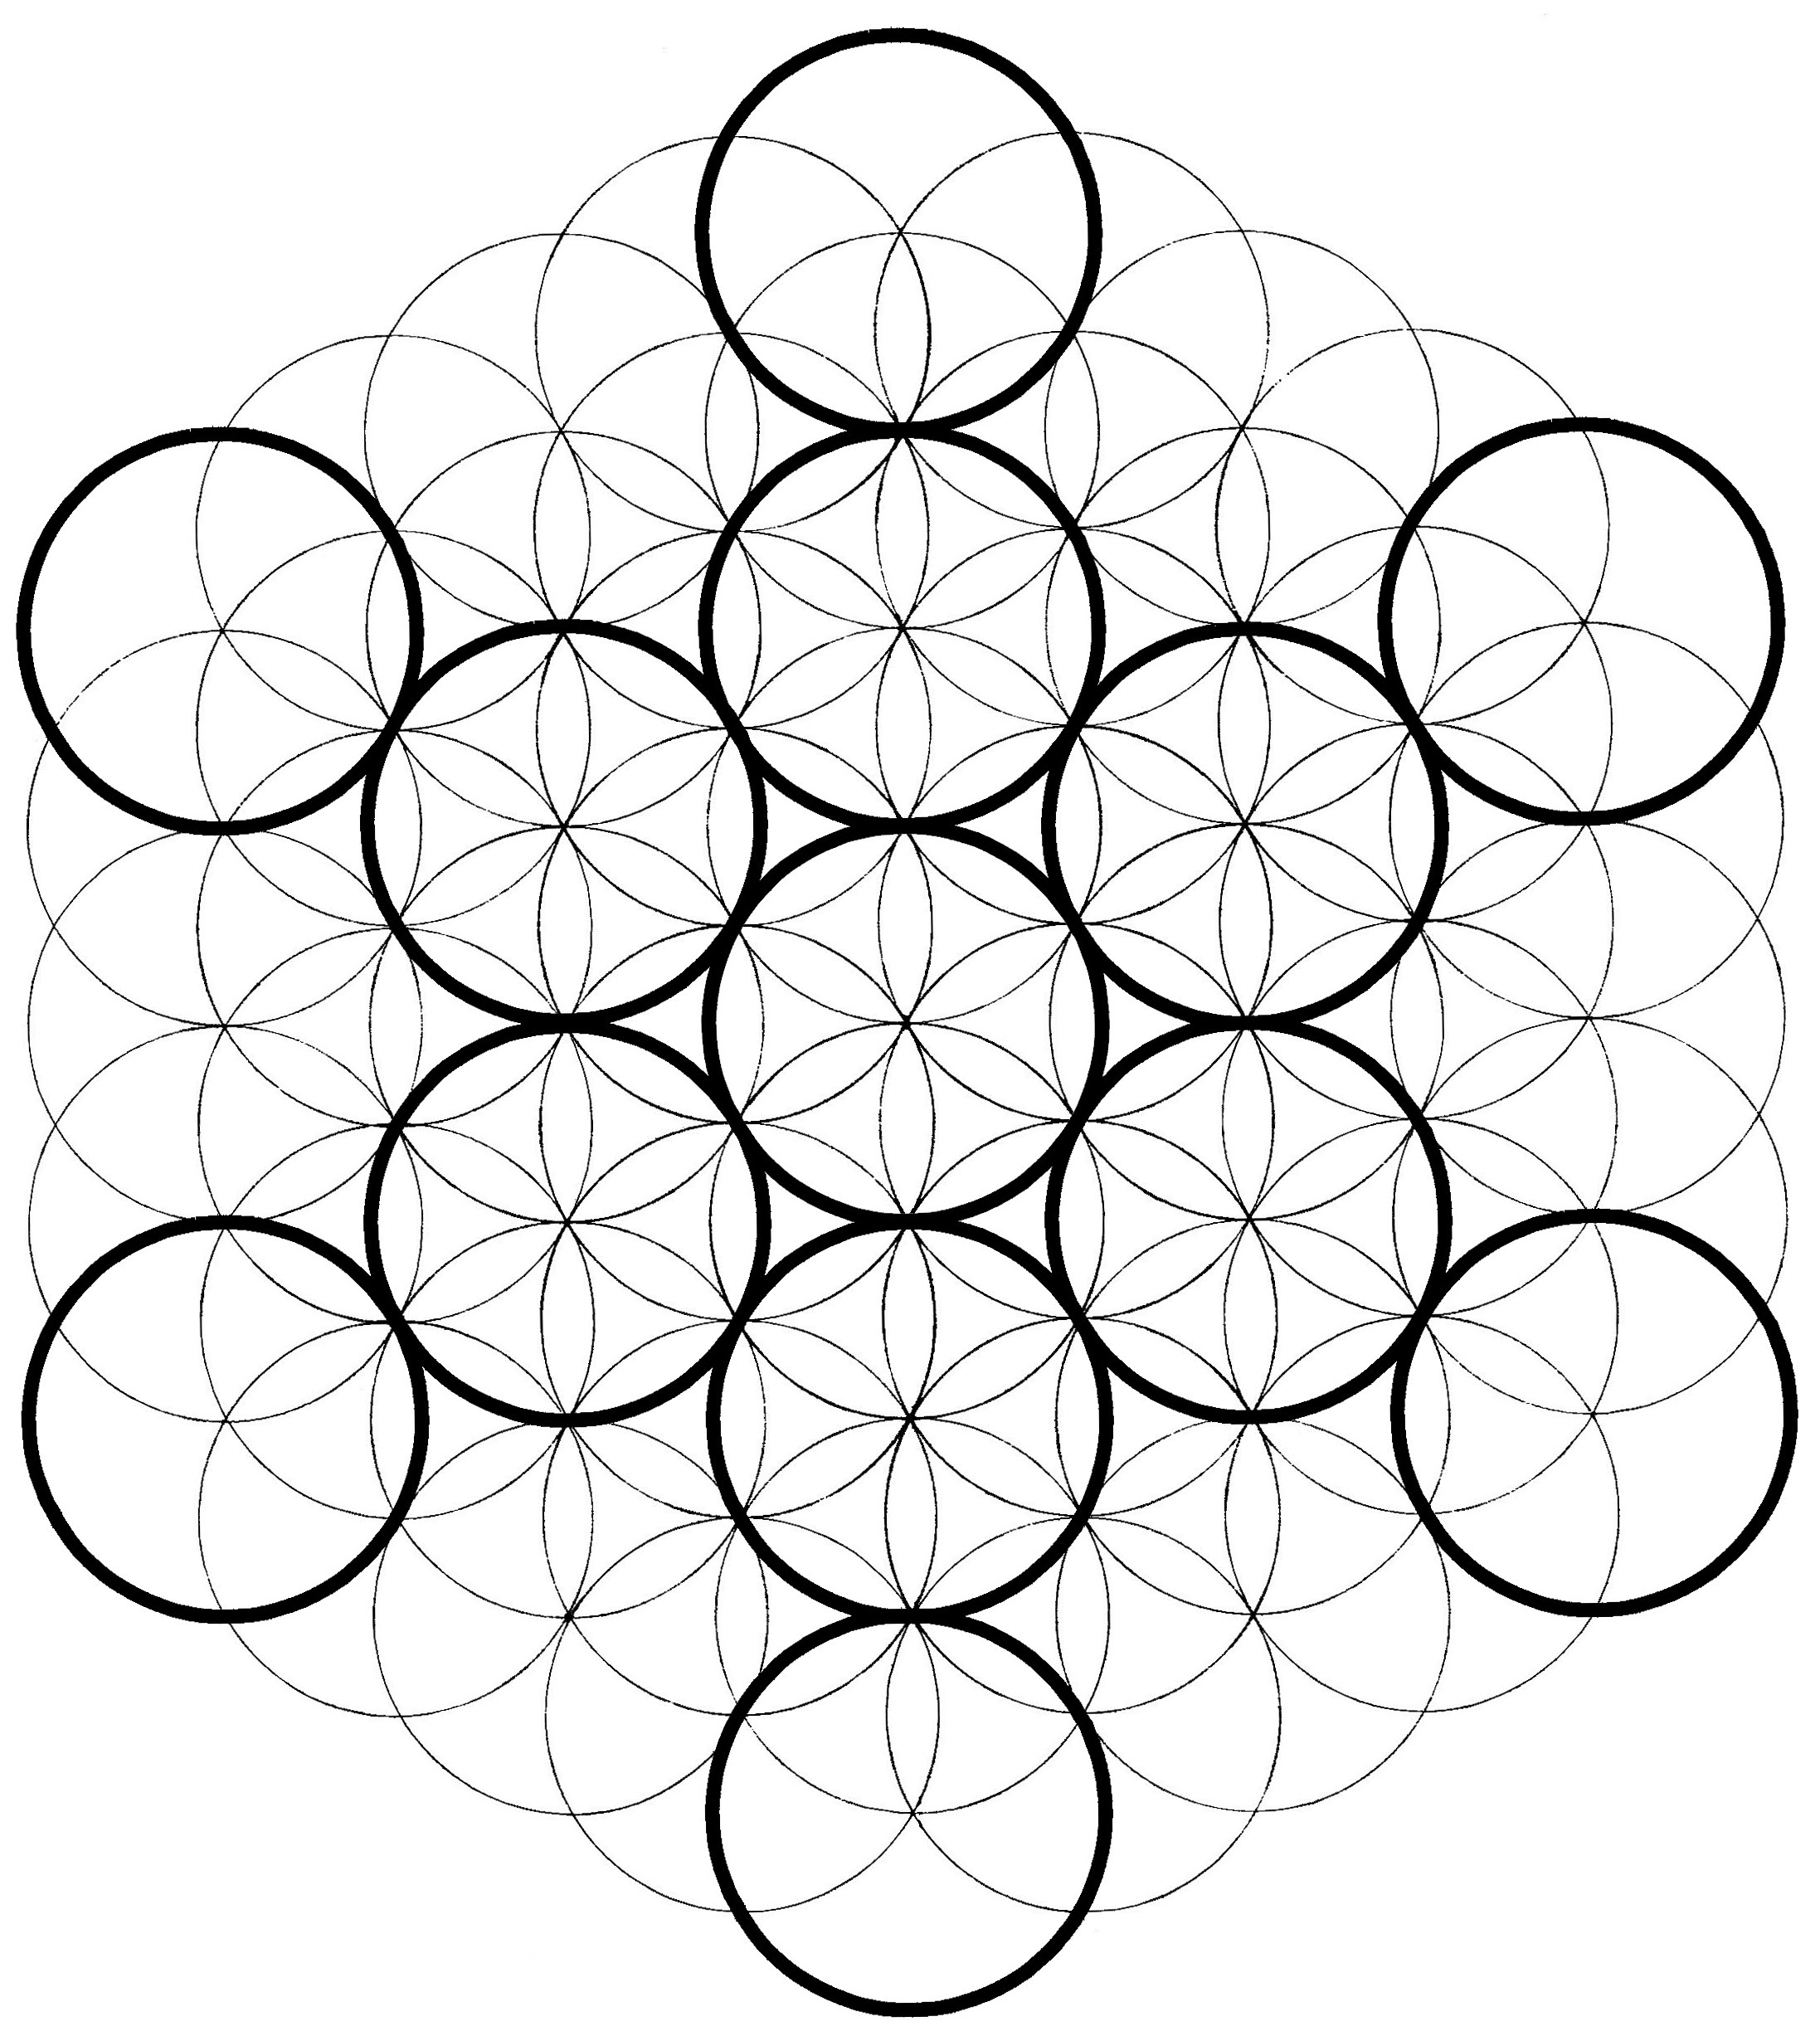 2194x2454 Metatron's Cube How To Draw Chemical Marriage